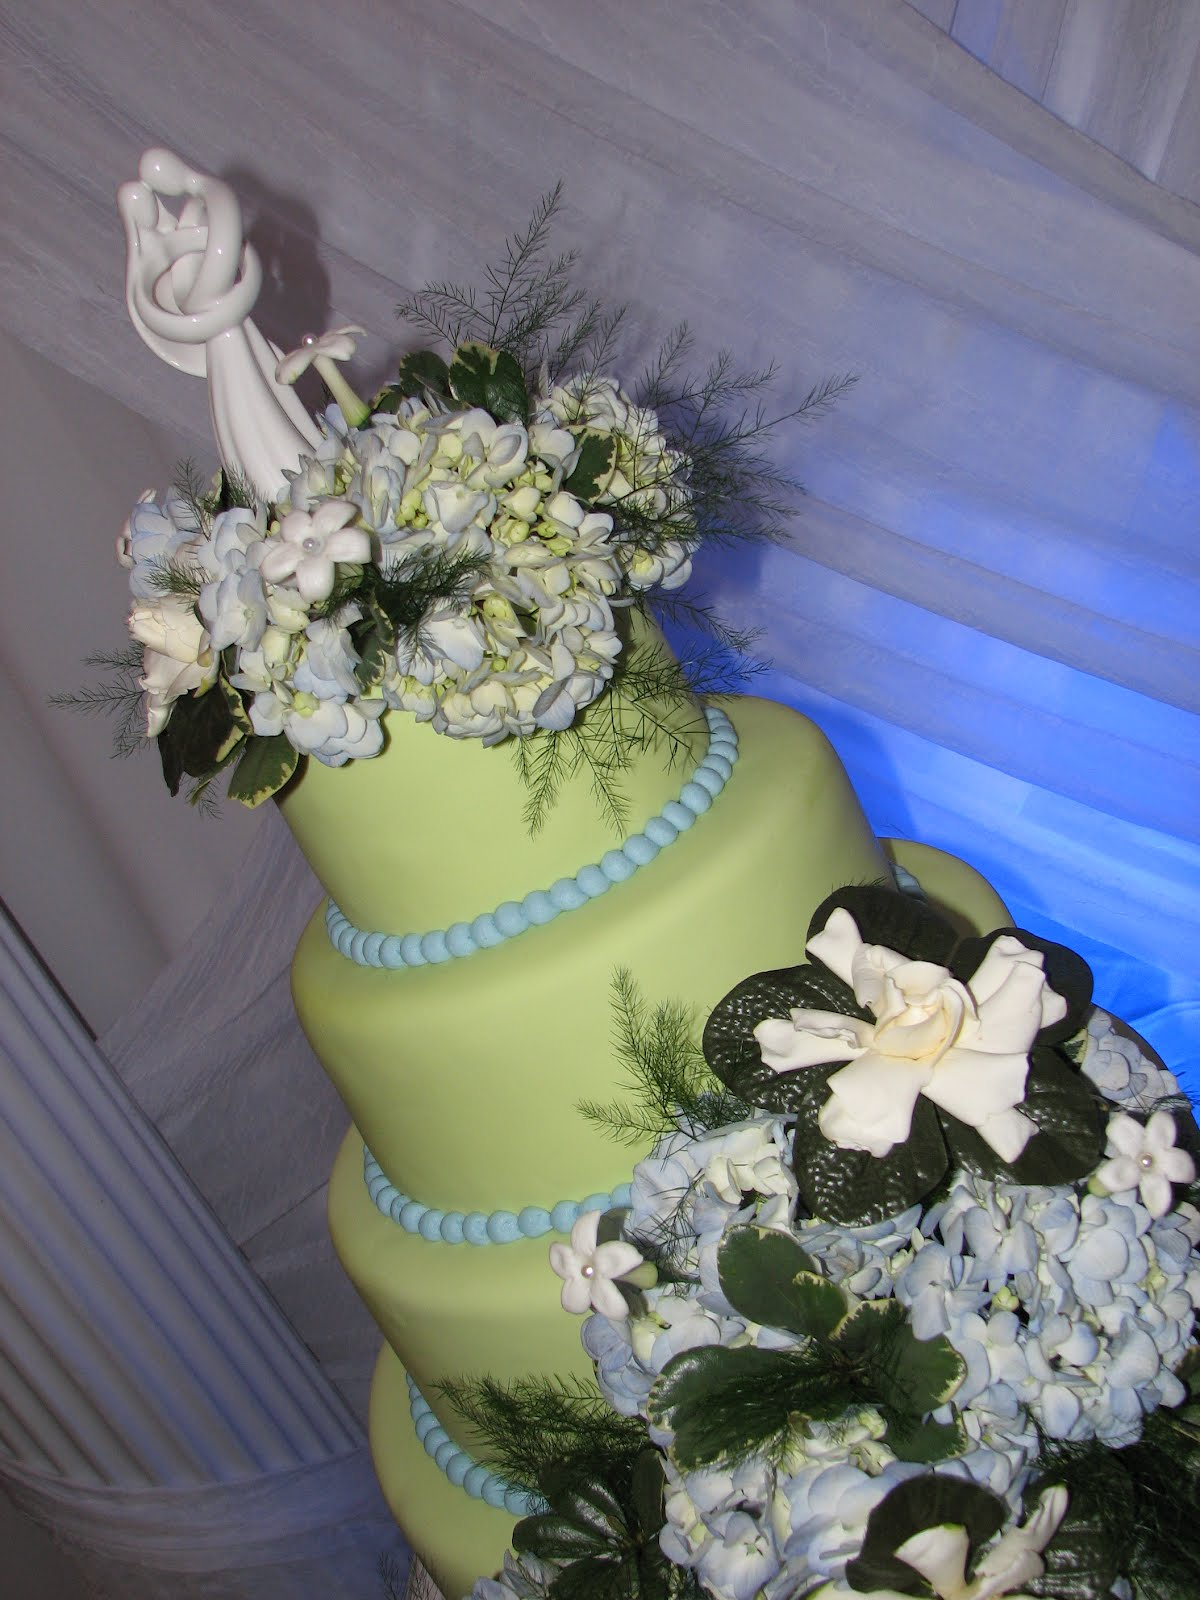 Decadent Designs David and Mayra s Green Blue Wedding Cake